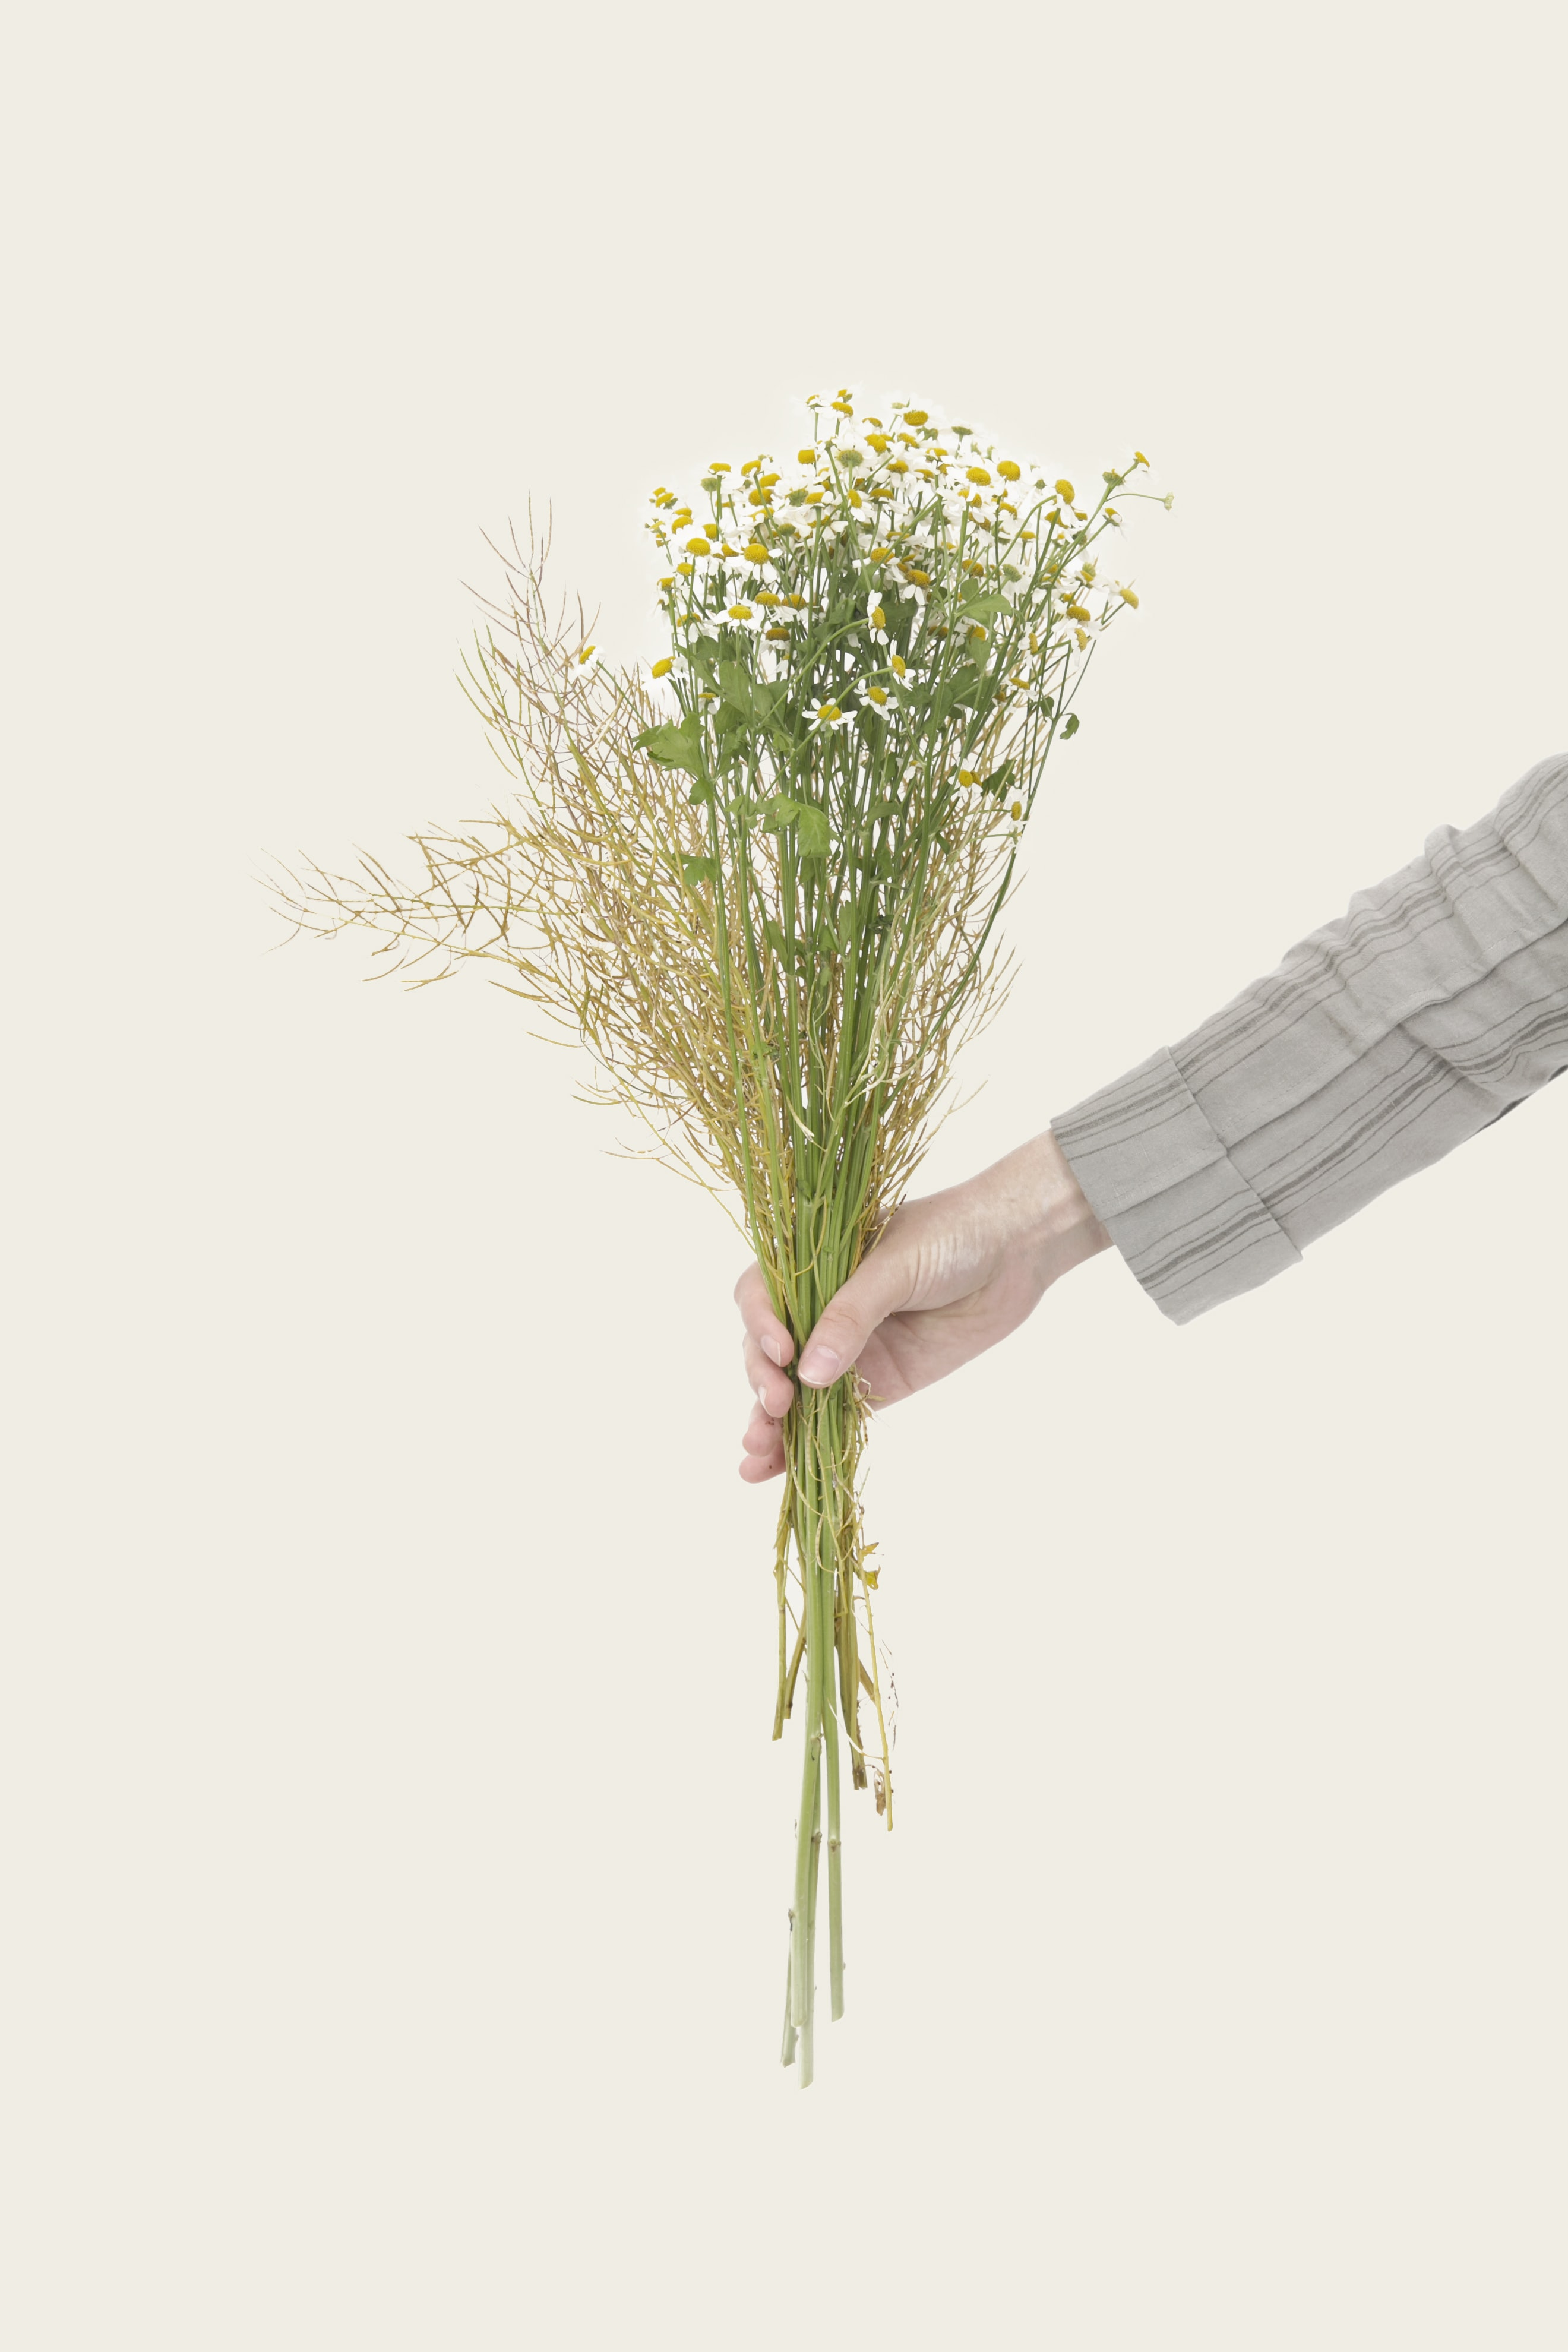 person holding bouquet of daisy flowers